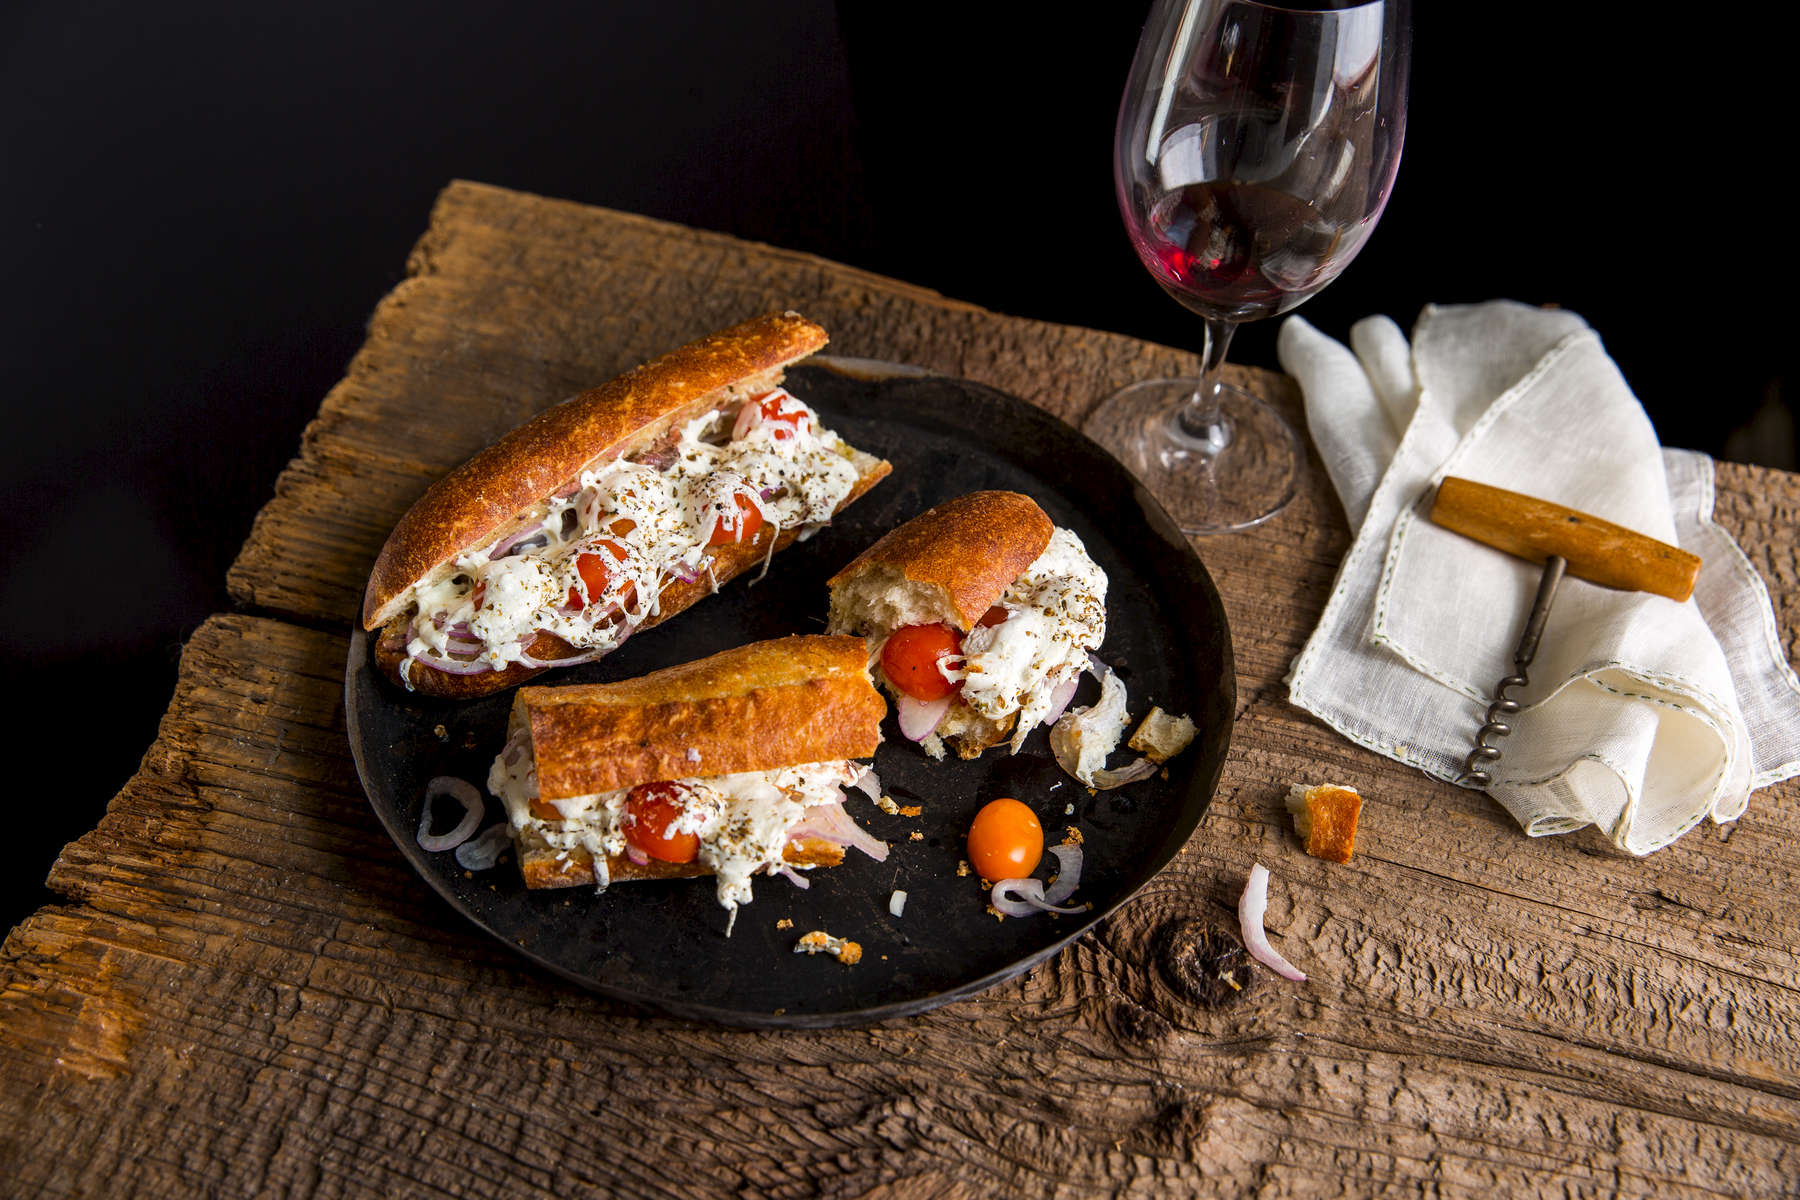 Recipes of the Day 61-65, Pissaladierre Baguette